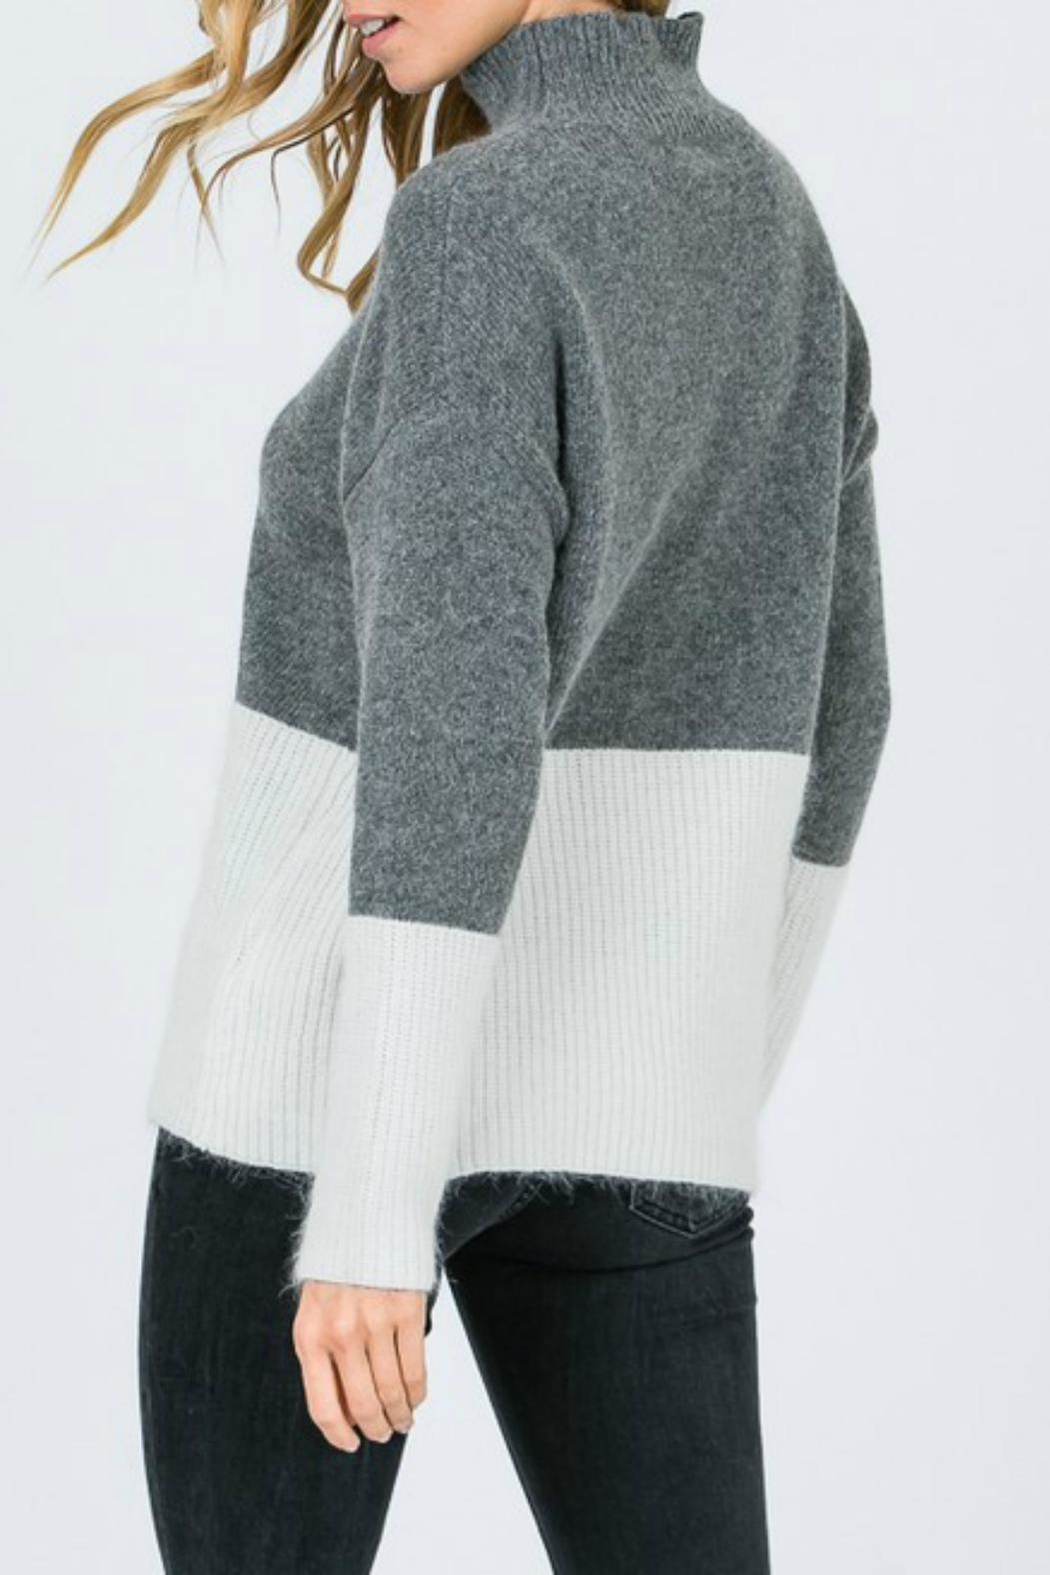 Pretty Little Things Angora Colorblock Sweater - Front Full Image